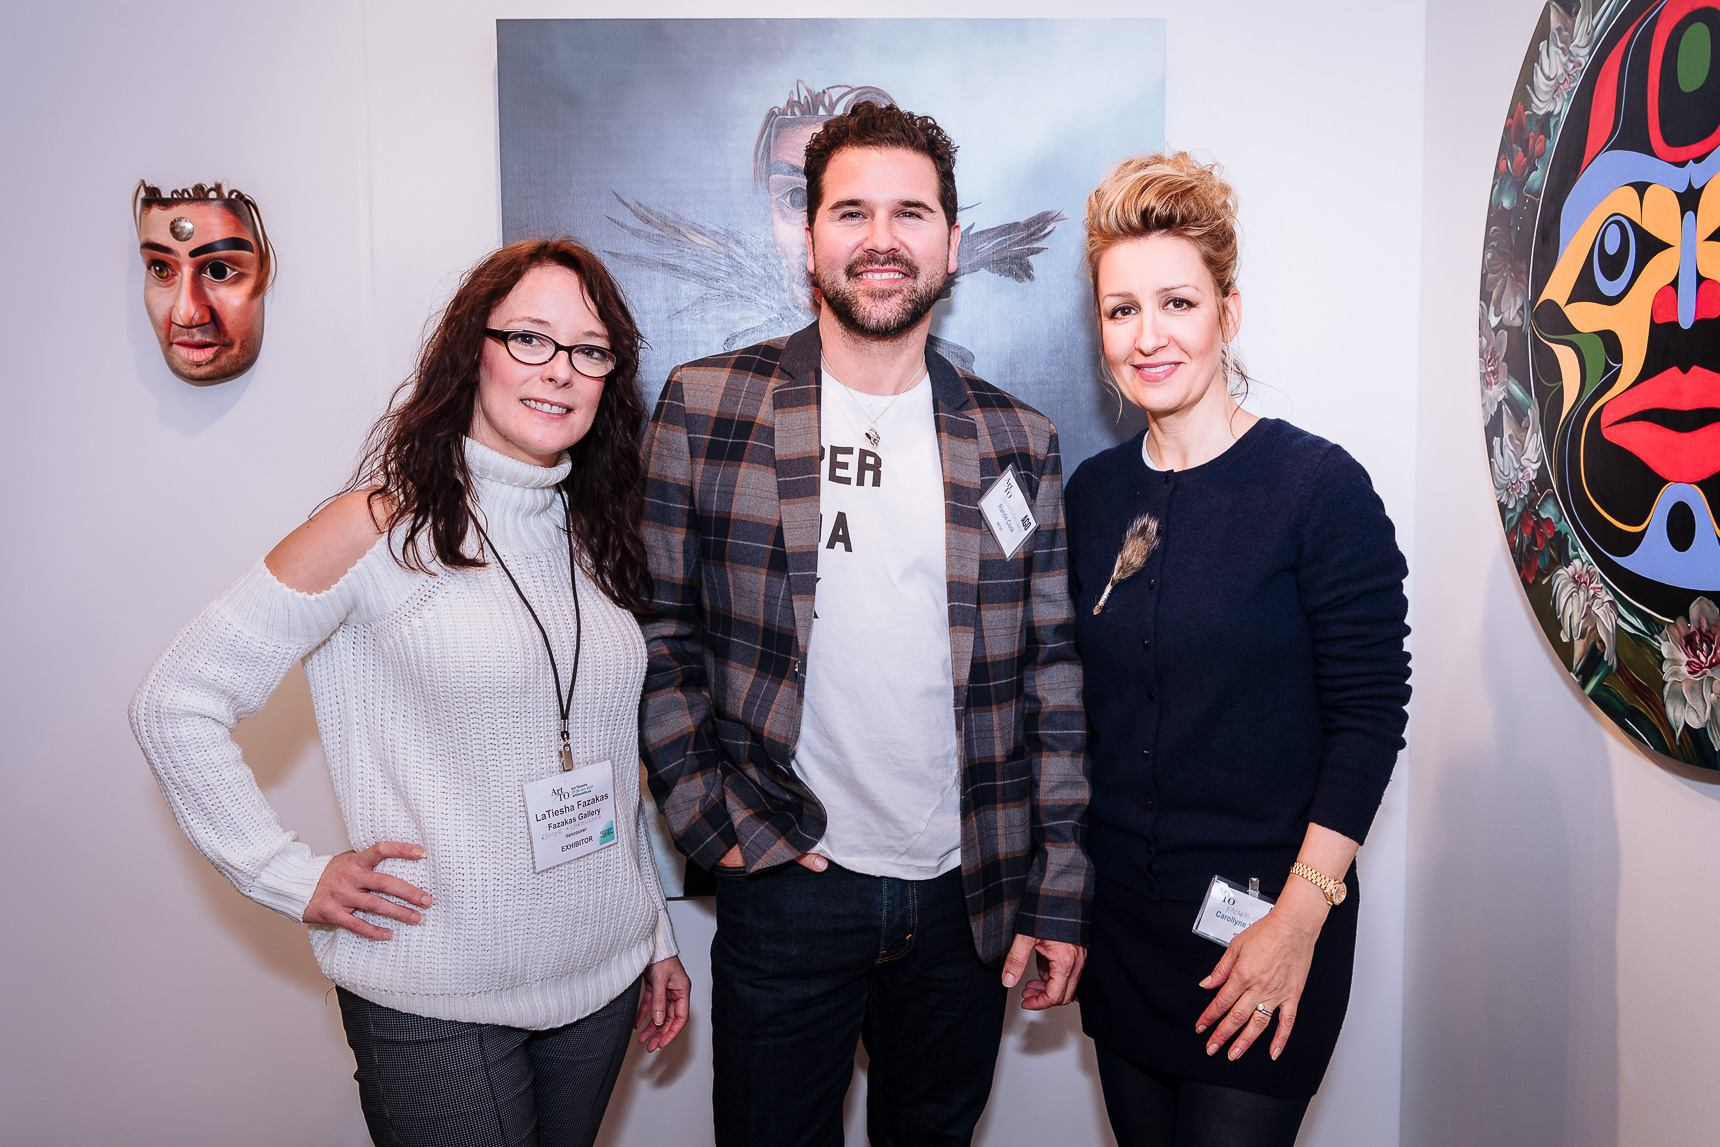 LaTiesha Fazakas, Rande Cook, Carollyne Yardley at Art Toronto, S11 Fazakas Gallery.